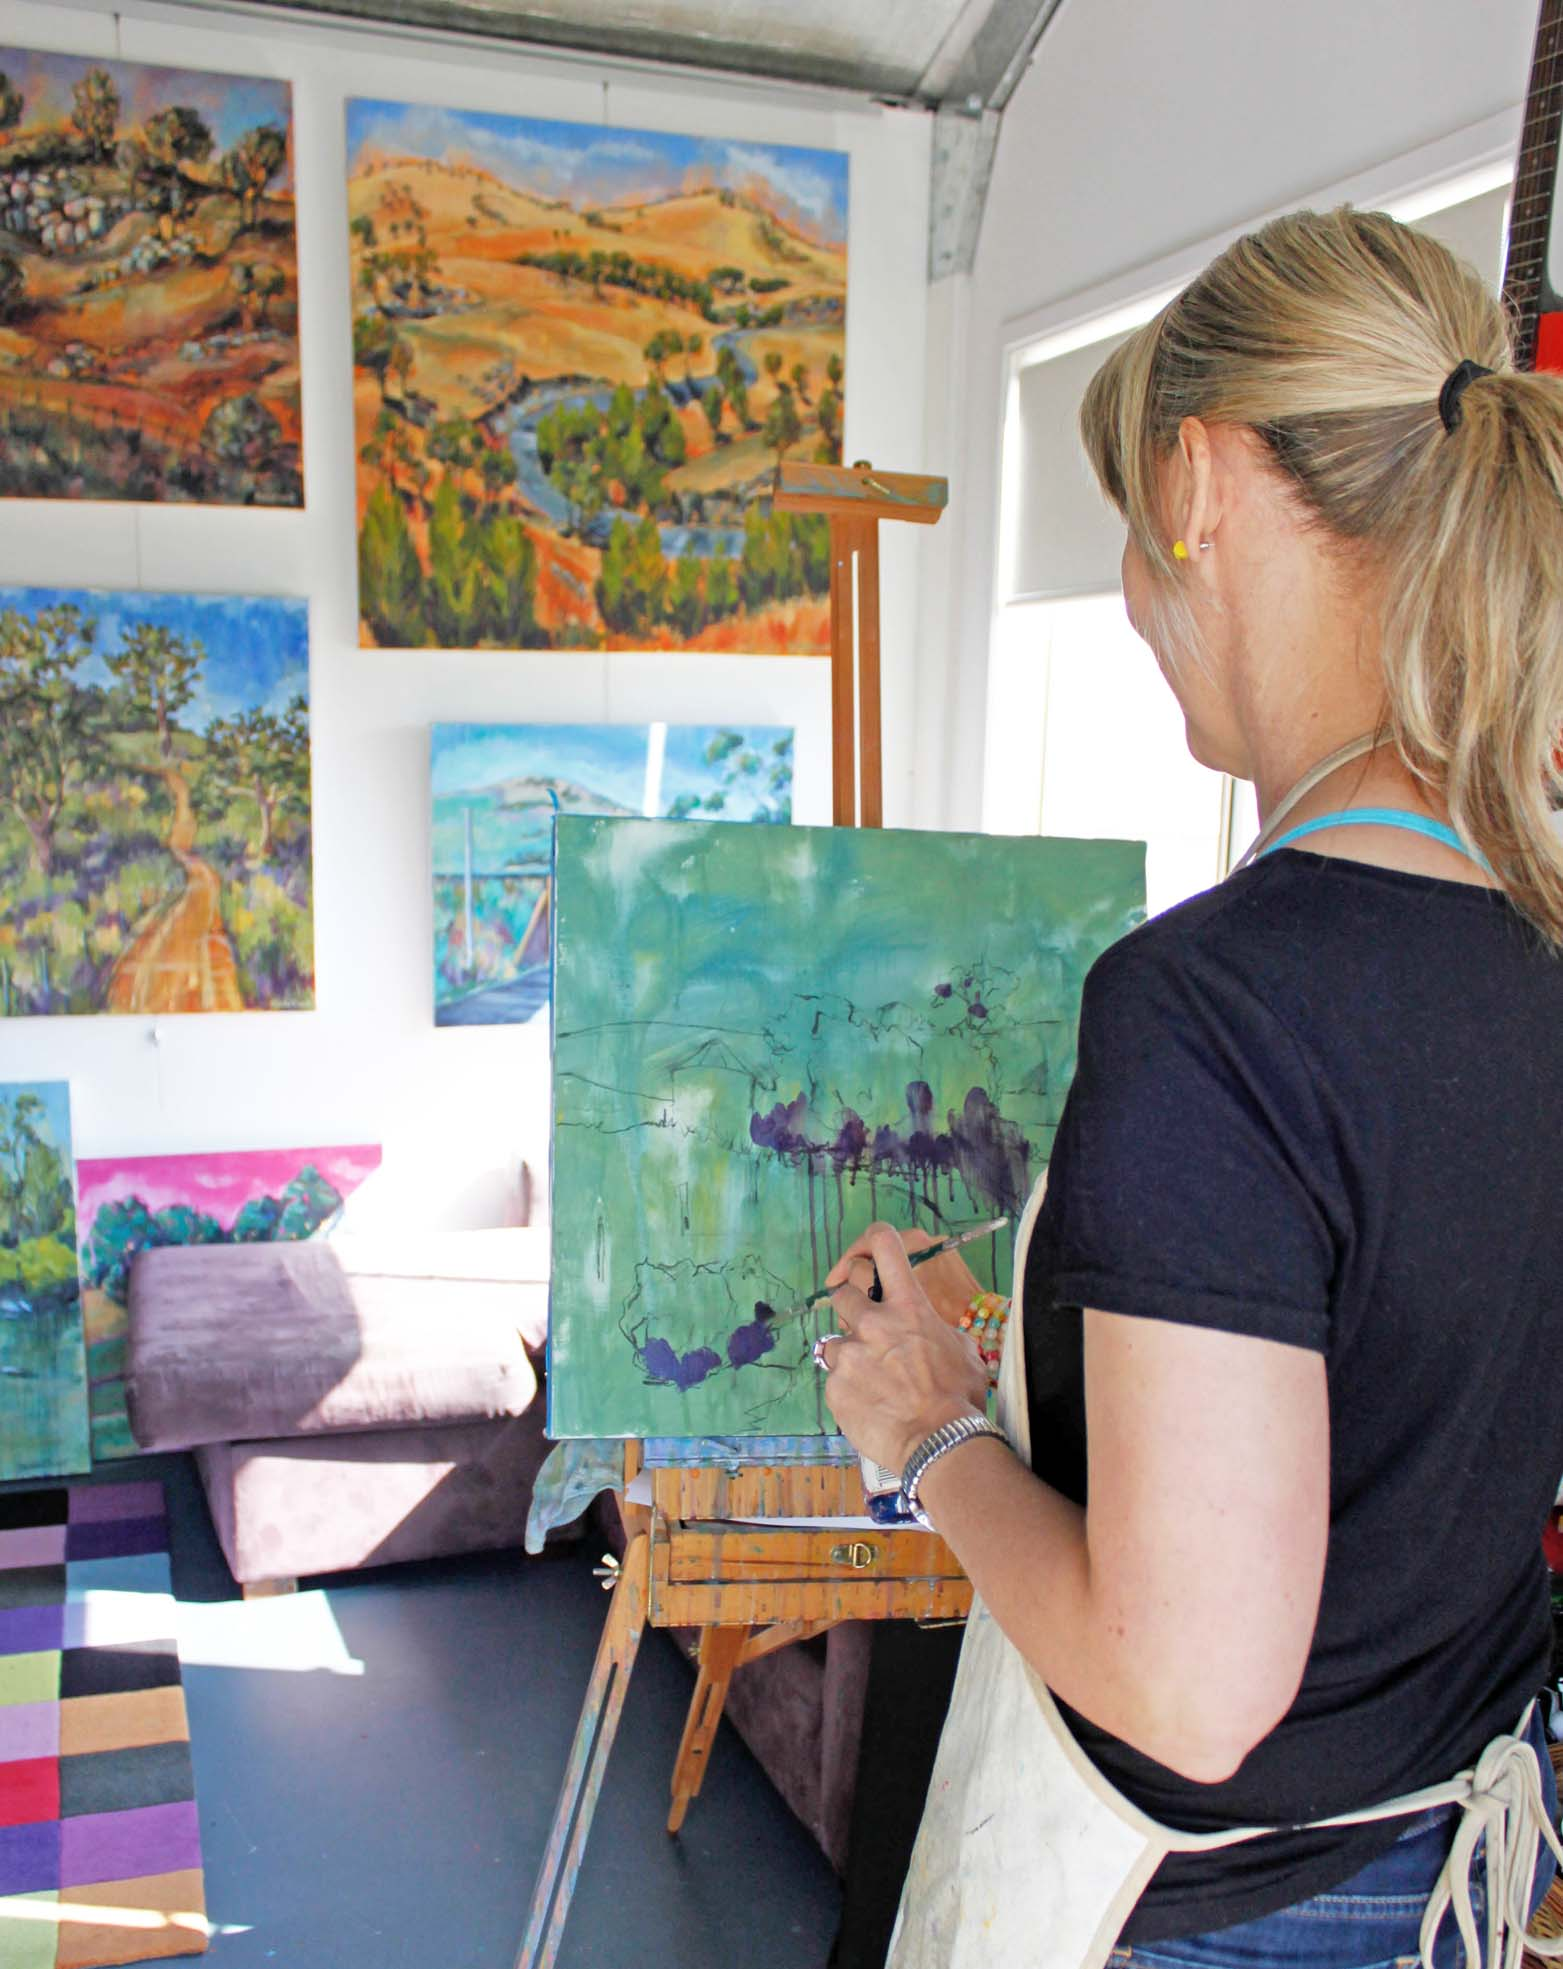 Australian artist studio visit, Nicole Foxall, The Corner Store Gallery, photograph by Madeline Young